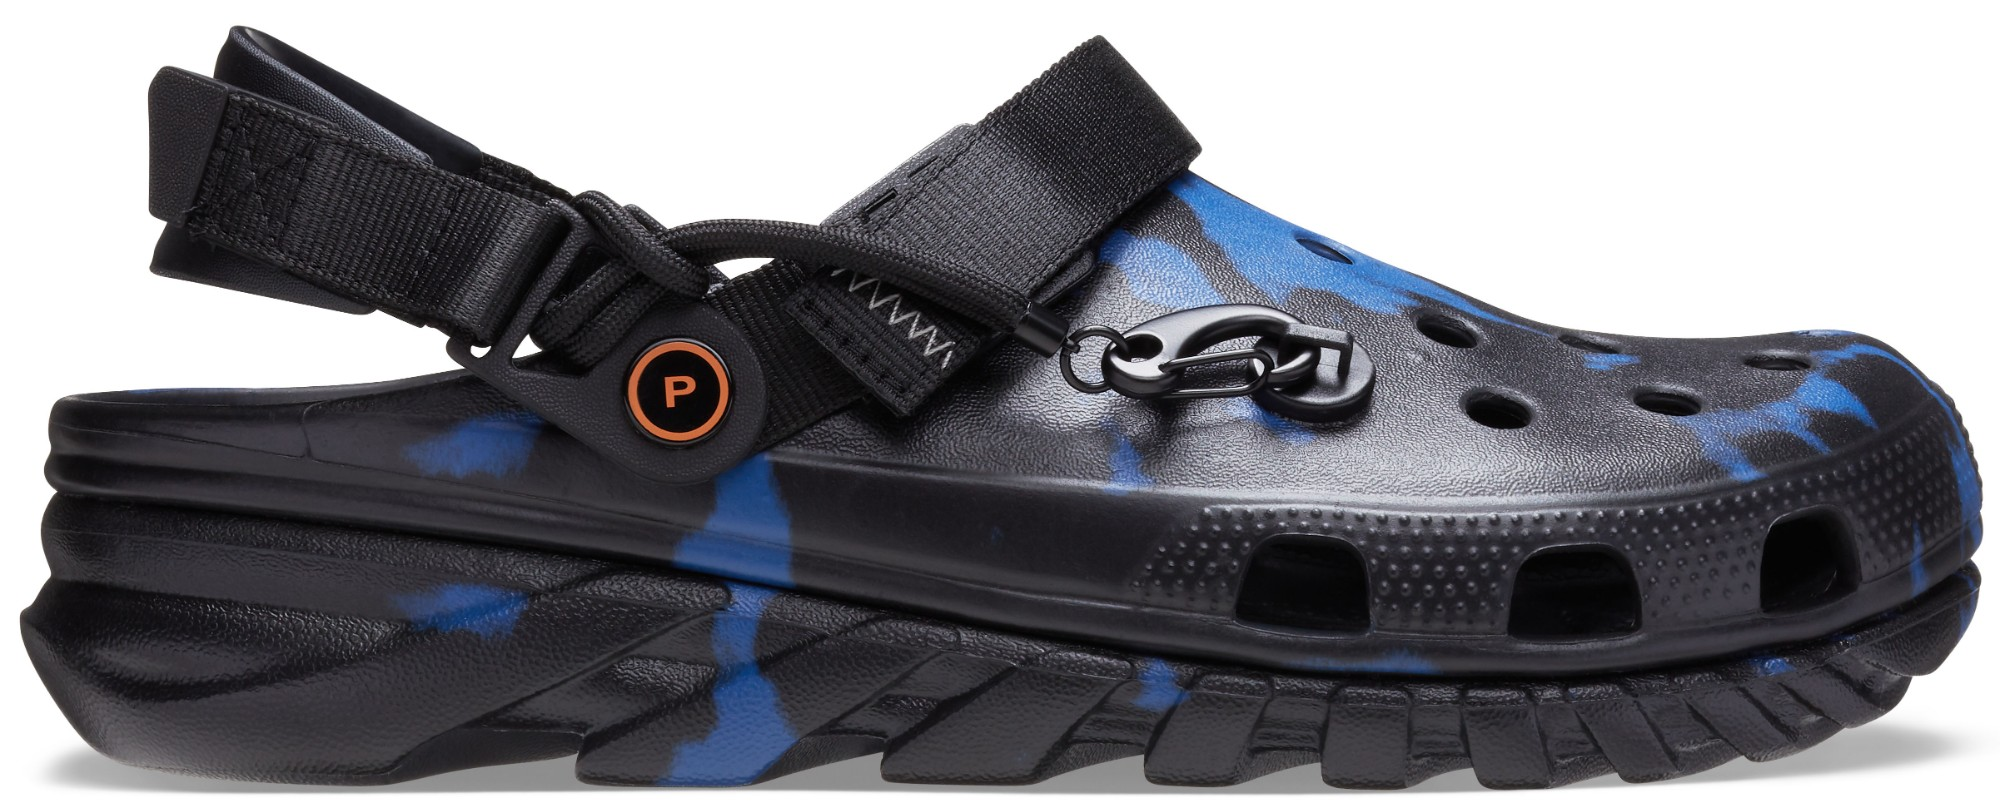 Crocs™ Post Malone X Crocs Duet Max Clog Black 37,5